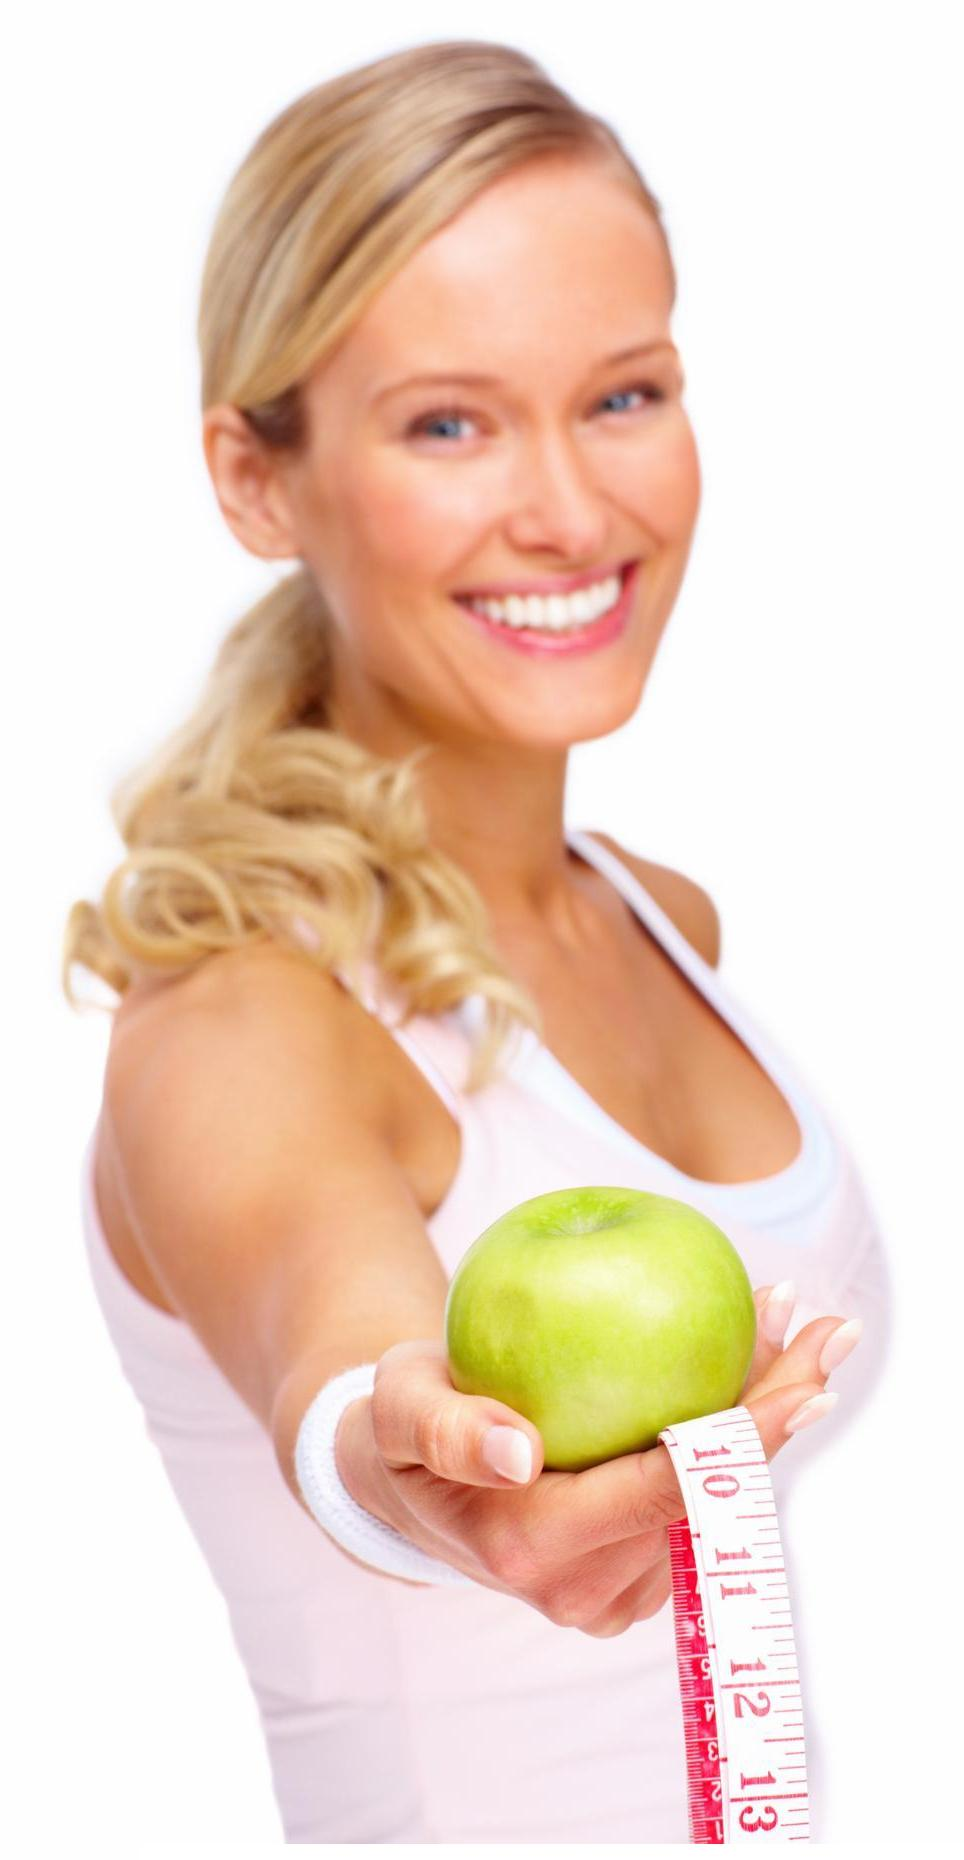 we offer two a diet and nutrition related services 1 diet food review ...